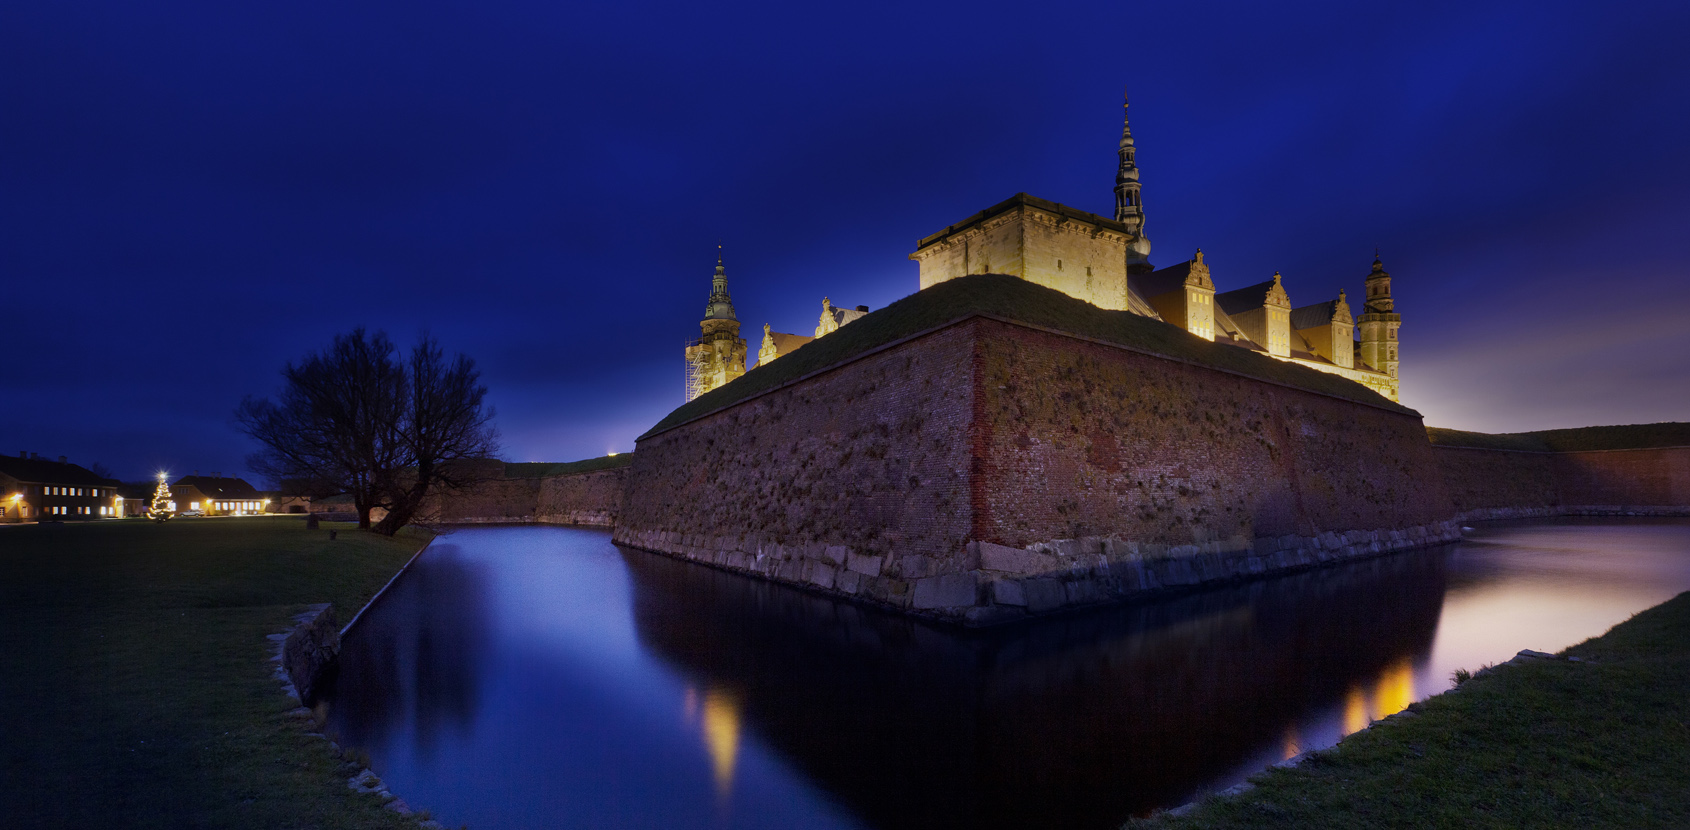 Kronborg Castle at night. Photo: Styrelsen for Slotte og Kulturejendomme